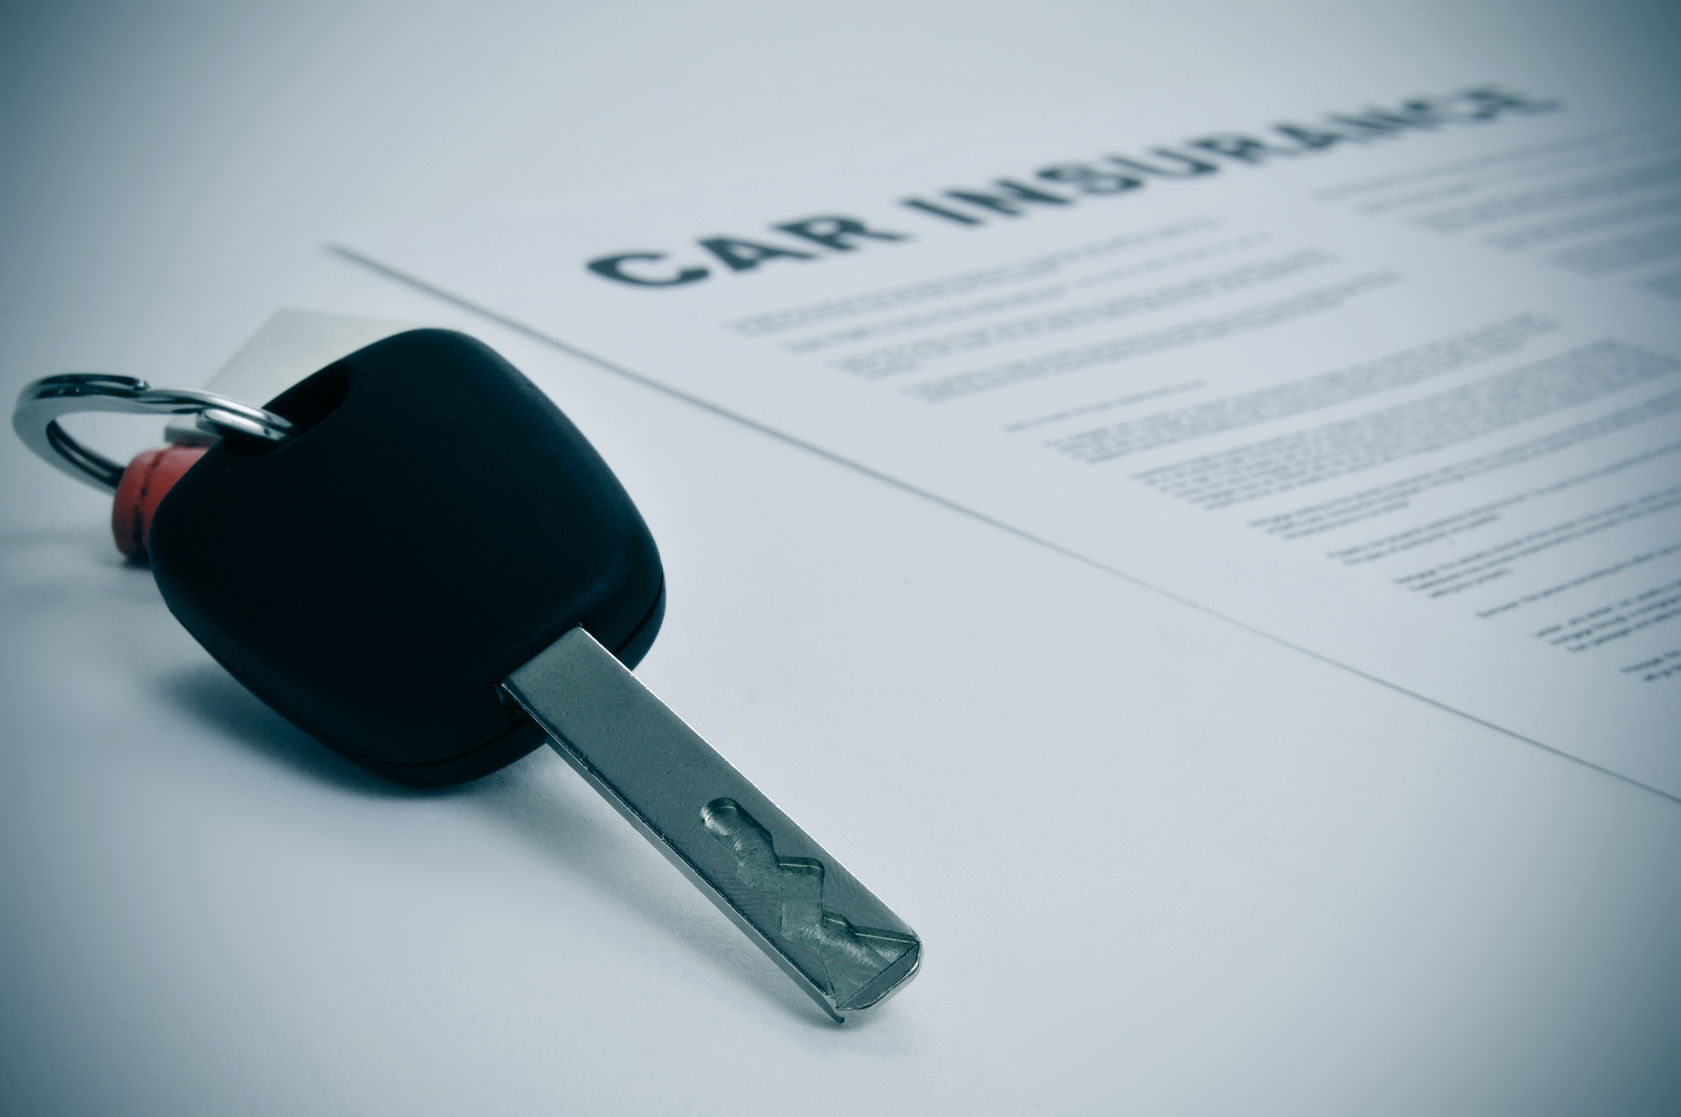 car insurance policy key